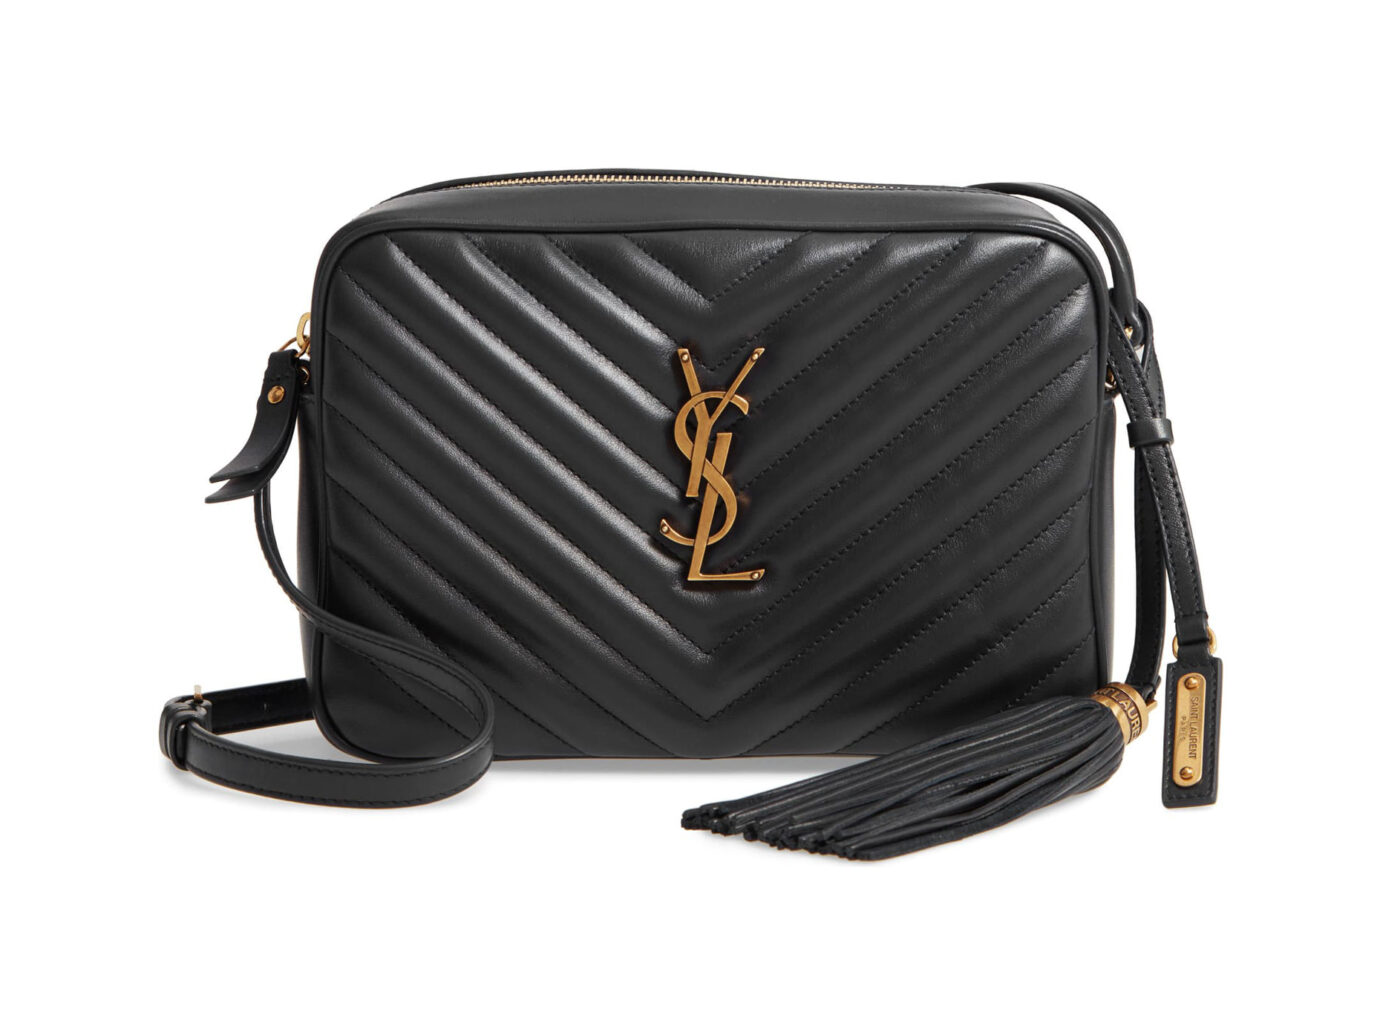 Lou Matelassé Leather Camera Bag SAINT LAURENT